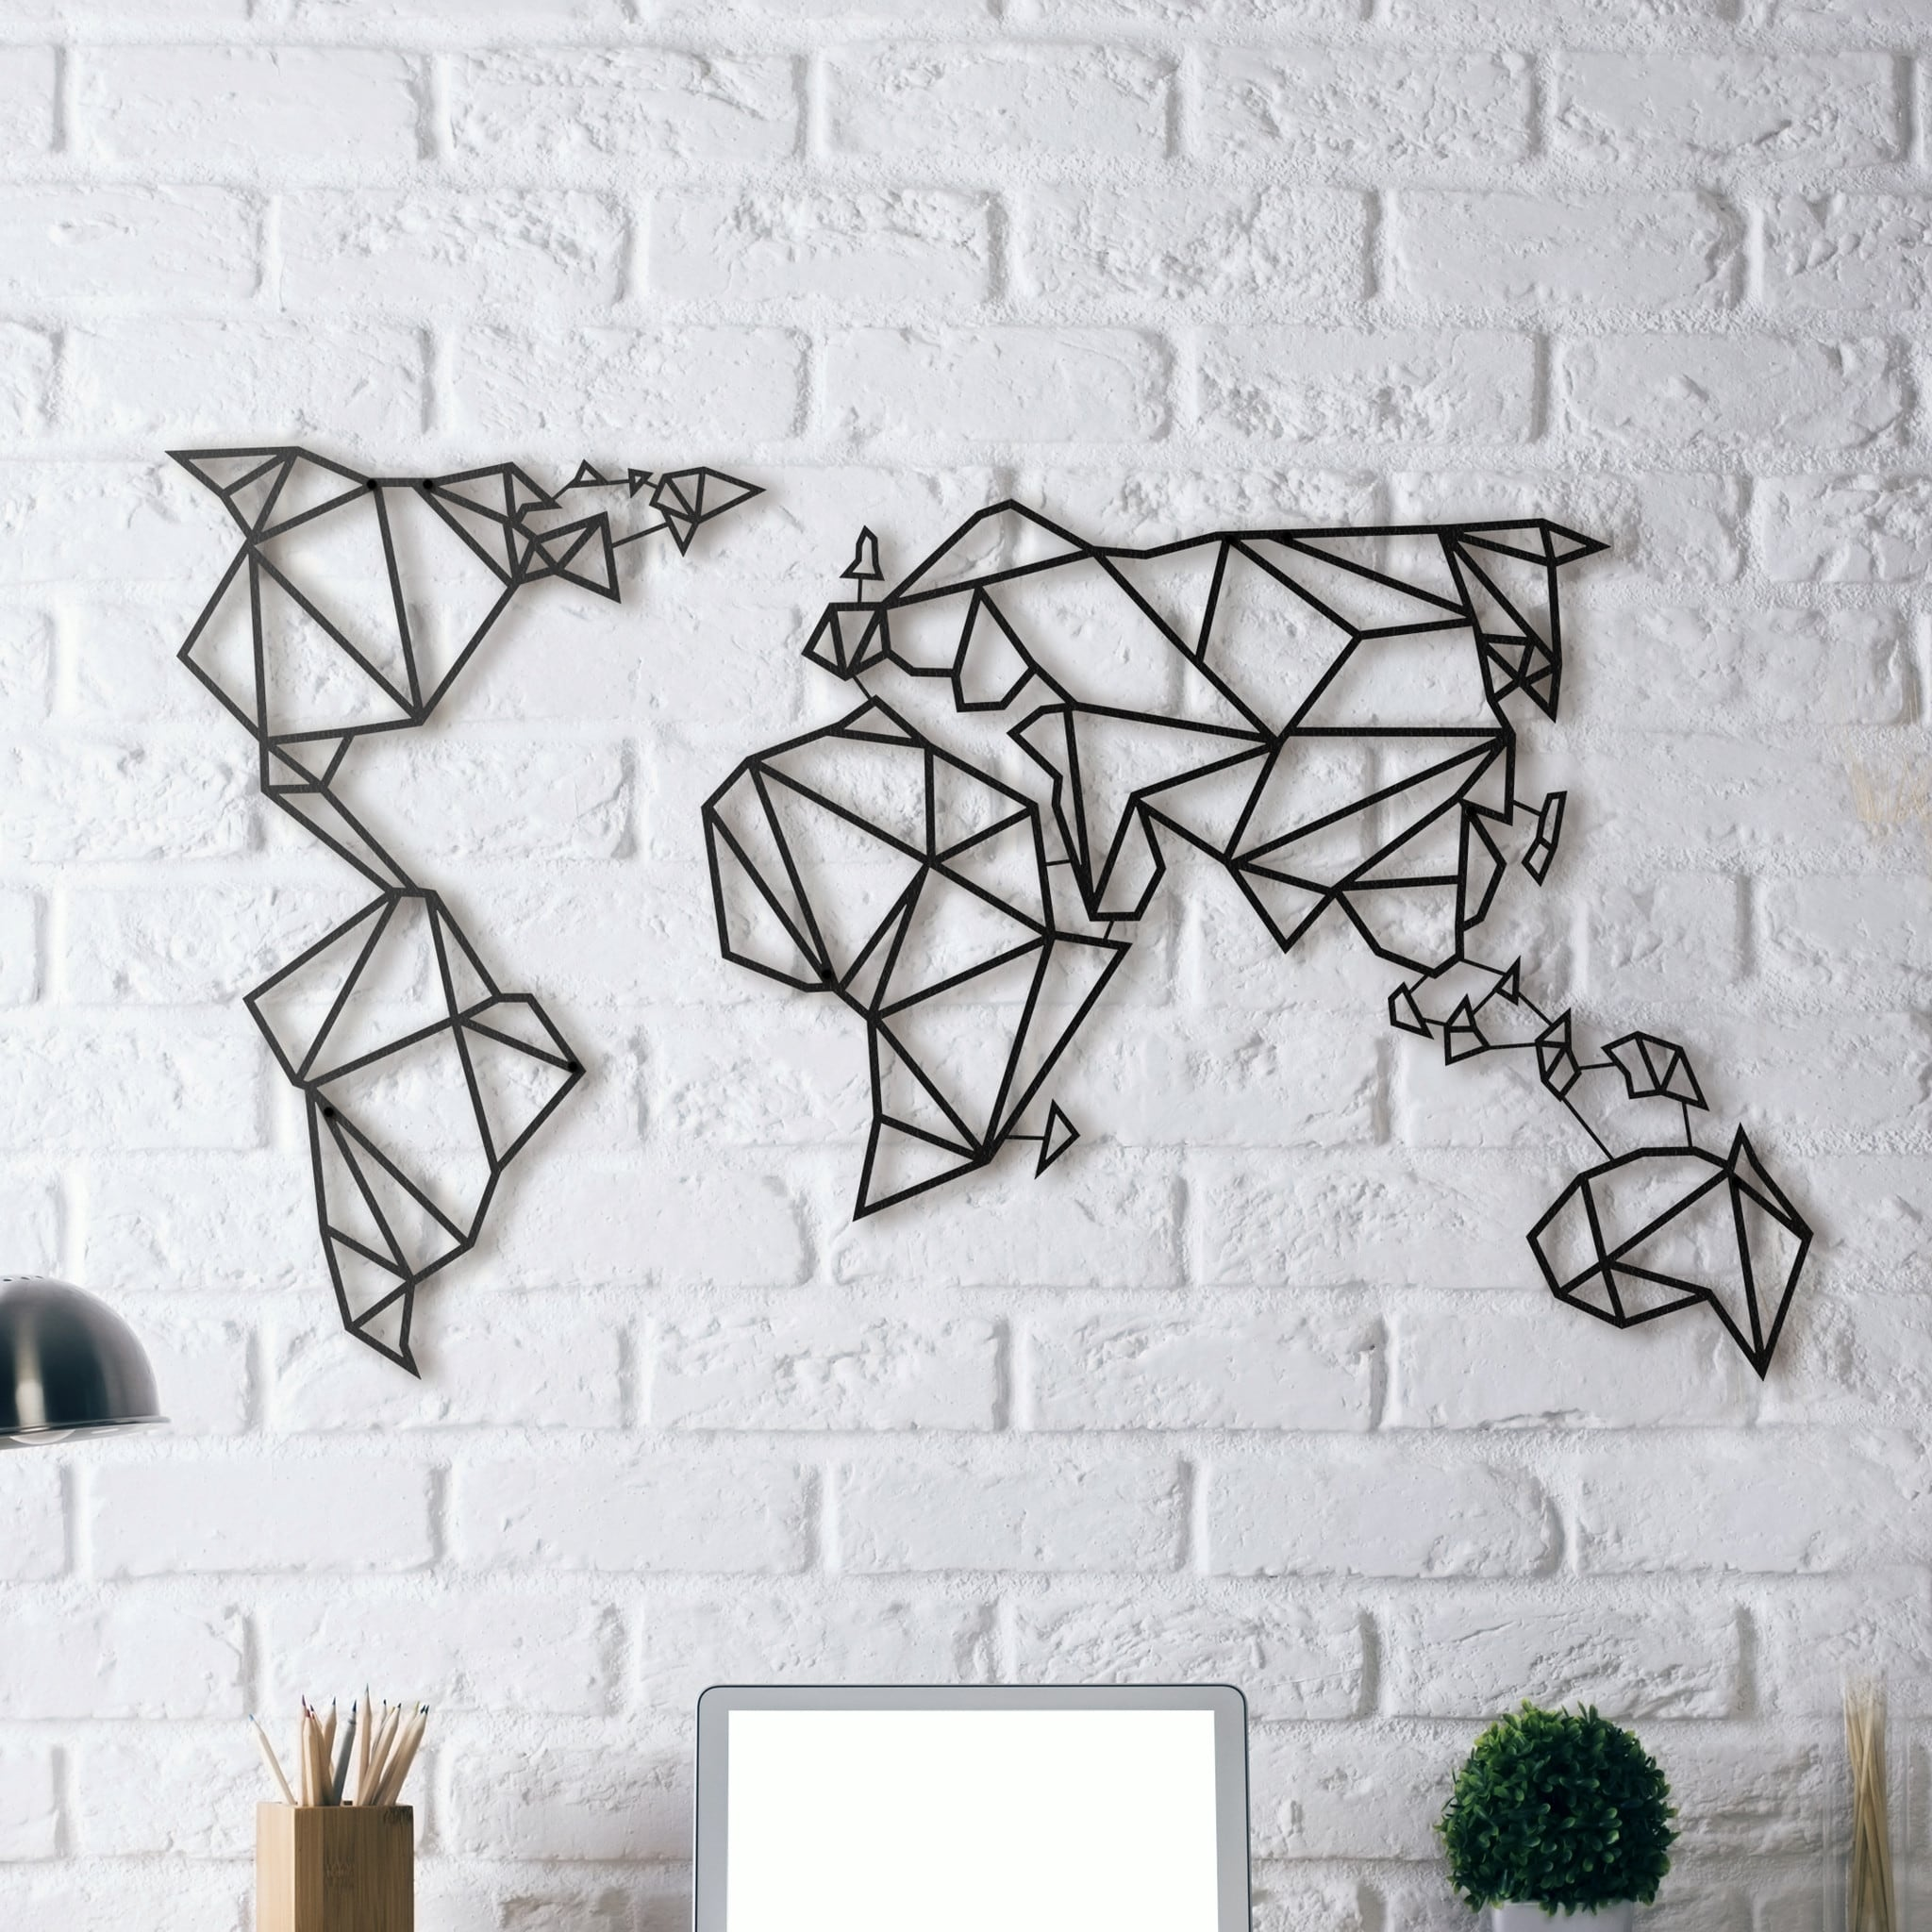 Metal wall decoration of a world map for design interior